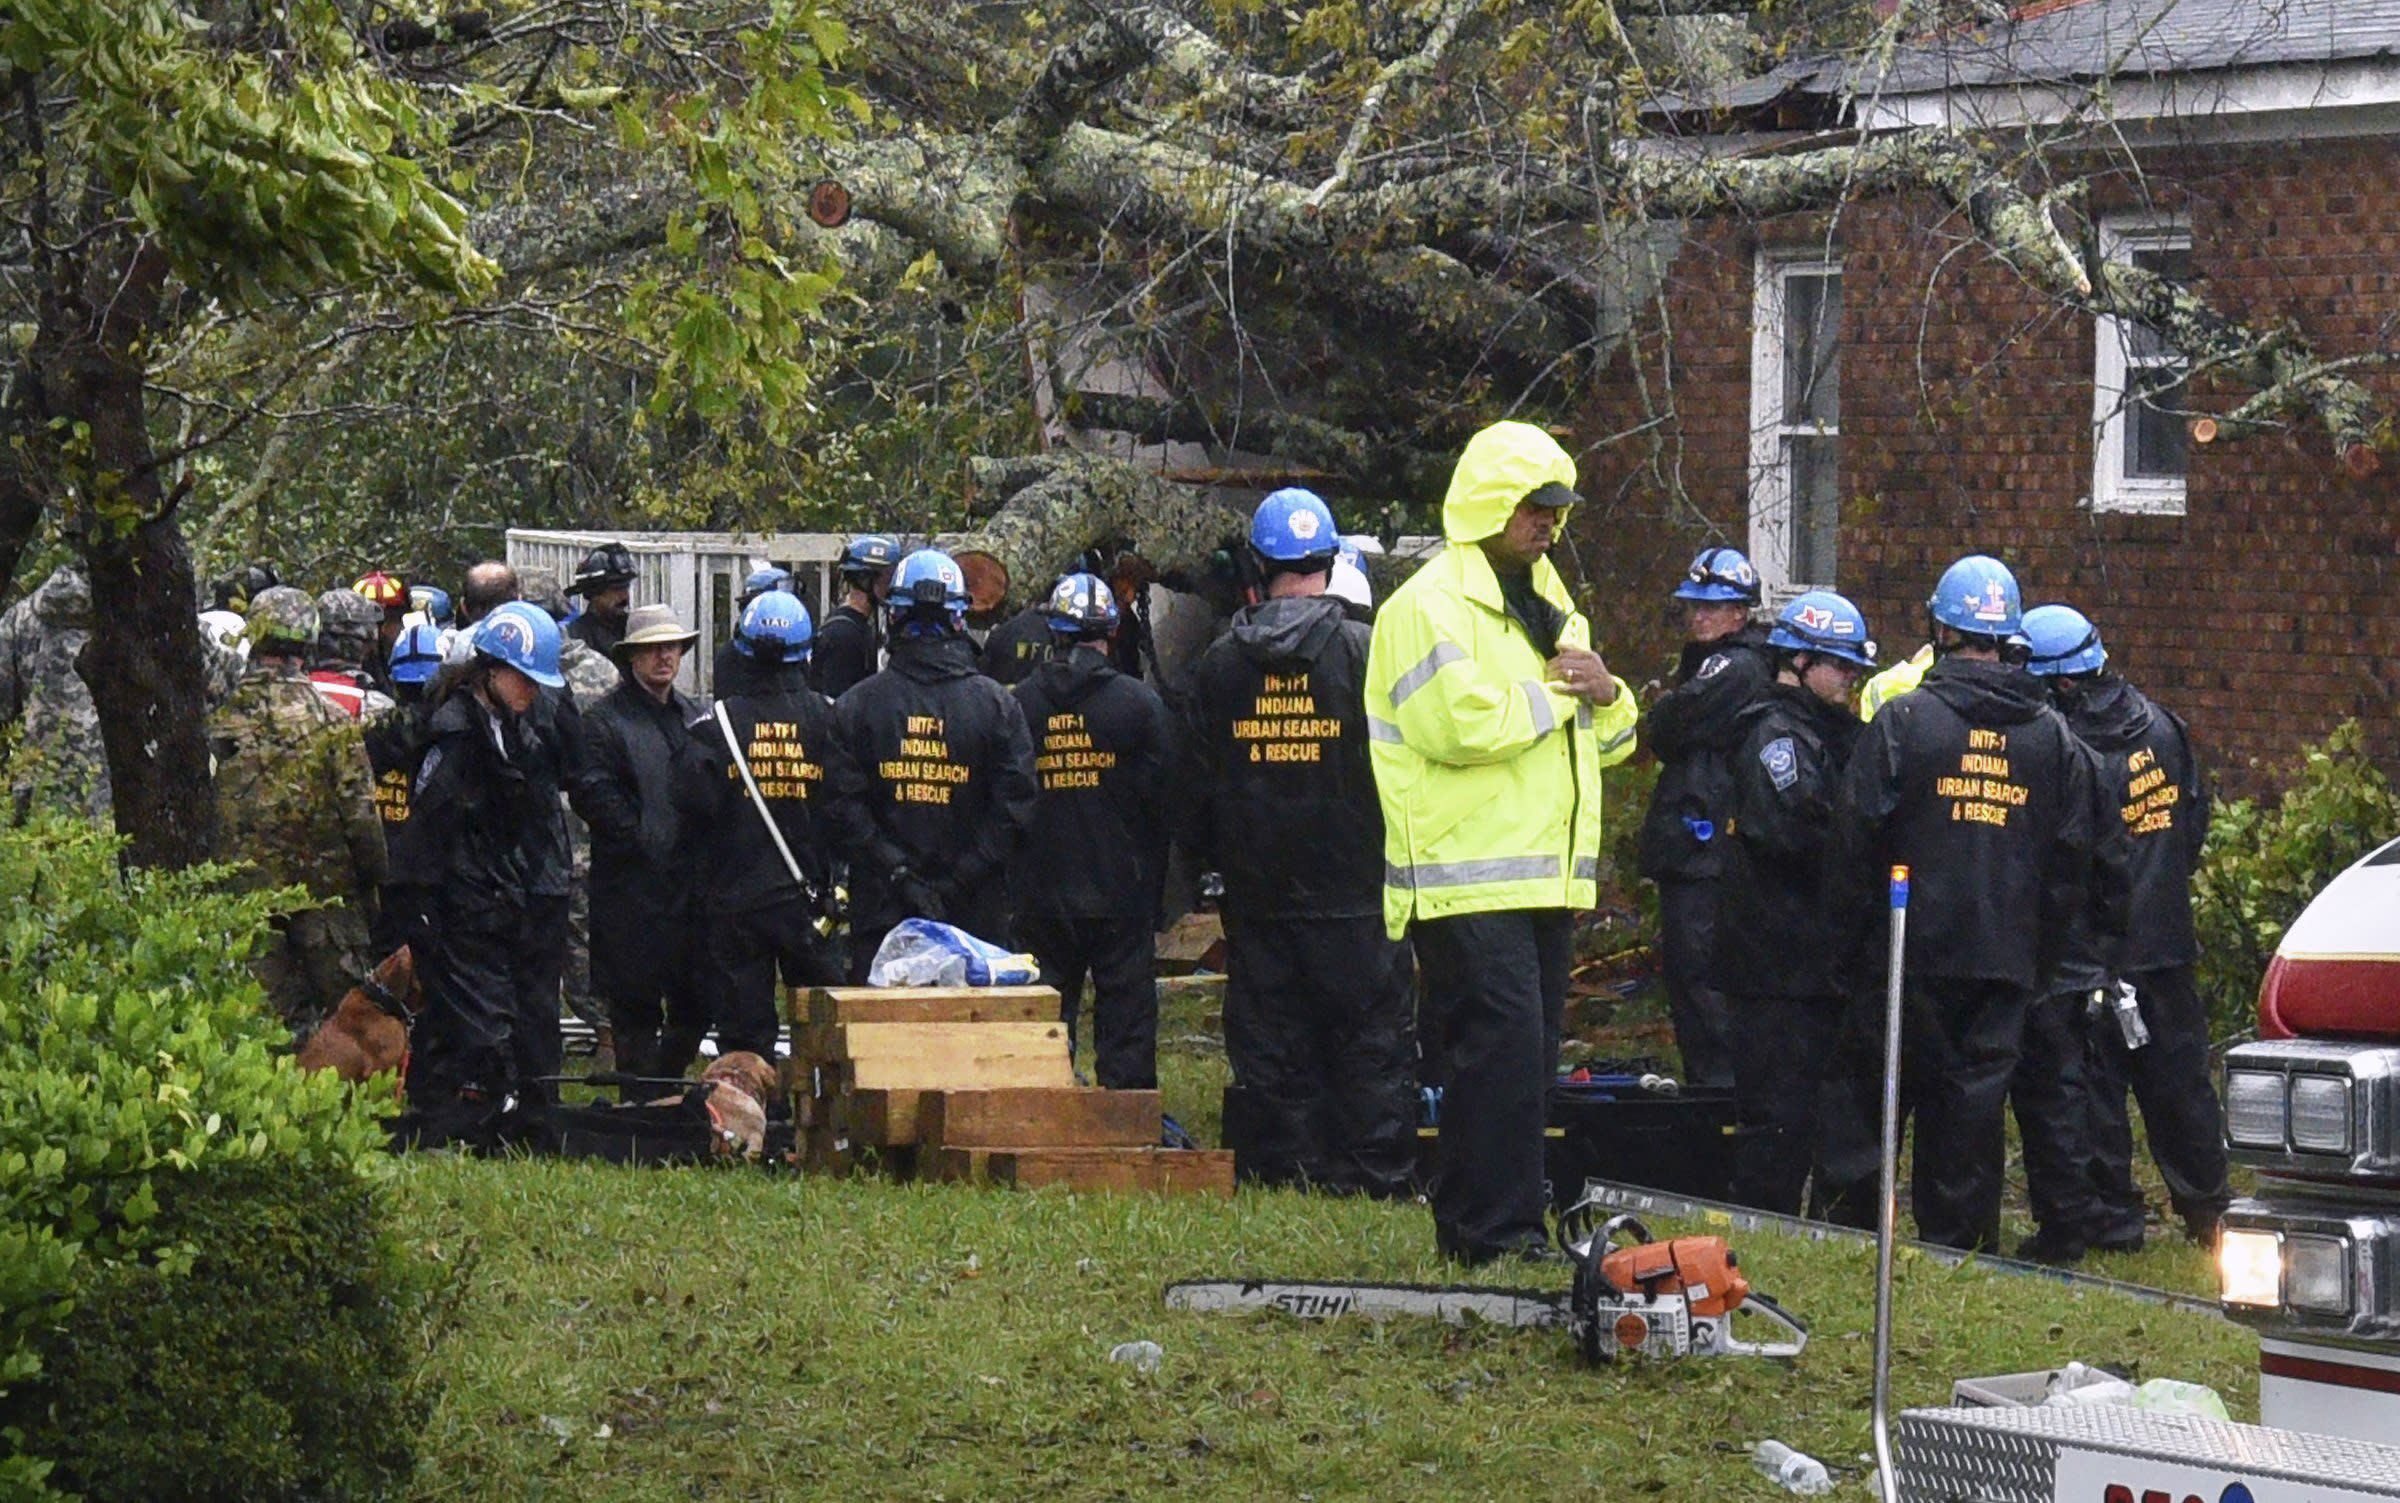 <p>Rescue workers, police and fire department members wait to remove the bodies of a mother and child who were killed by a falling tree as Hurricane Florence made landfall in Wilmington, N.C. Friday Sept. 14, 2018. The father was transported to the hospital with serious injuries. (Photo: Chuck Liddy/The News & Observer via AP) </p>